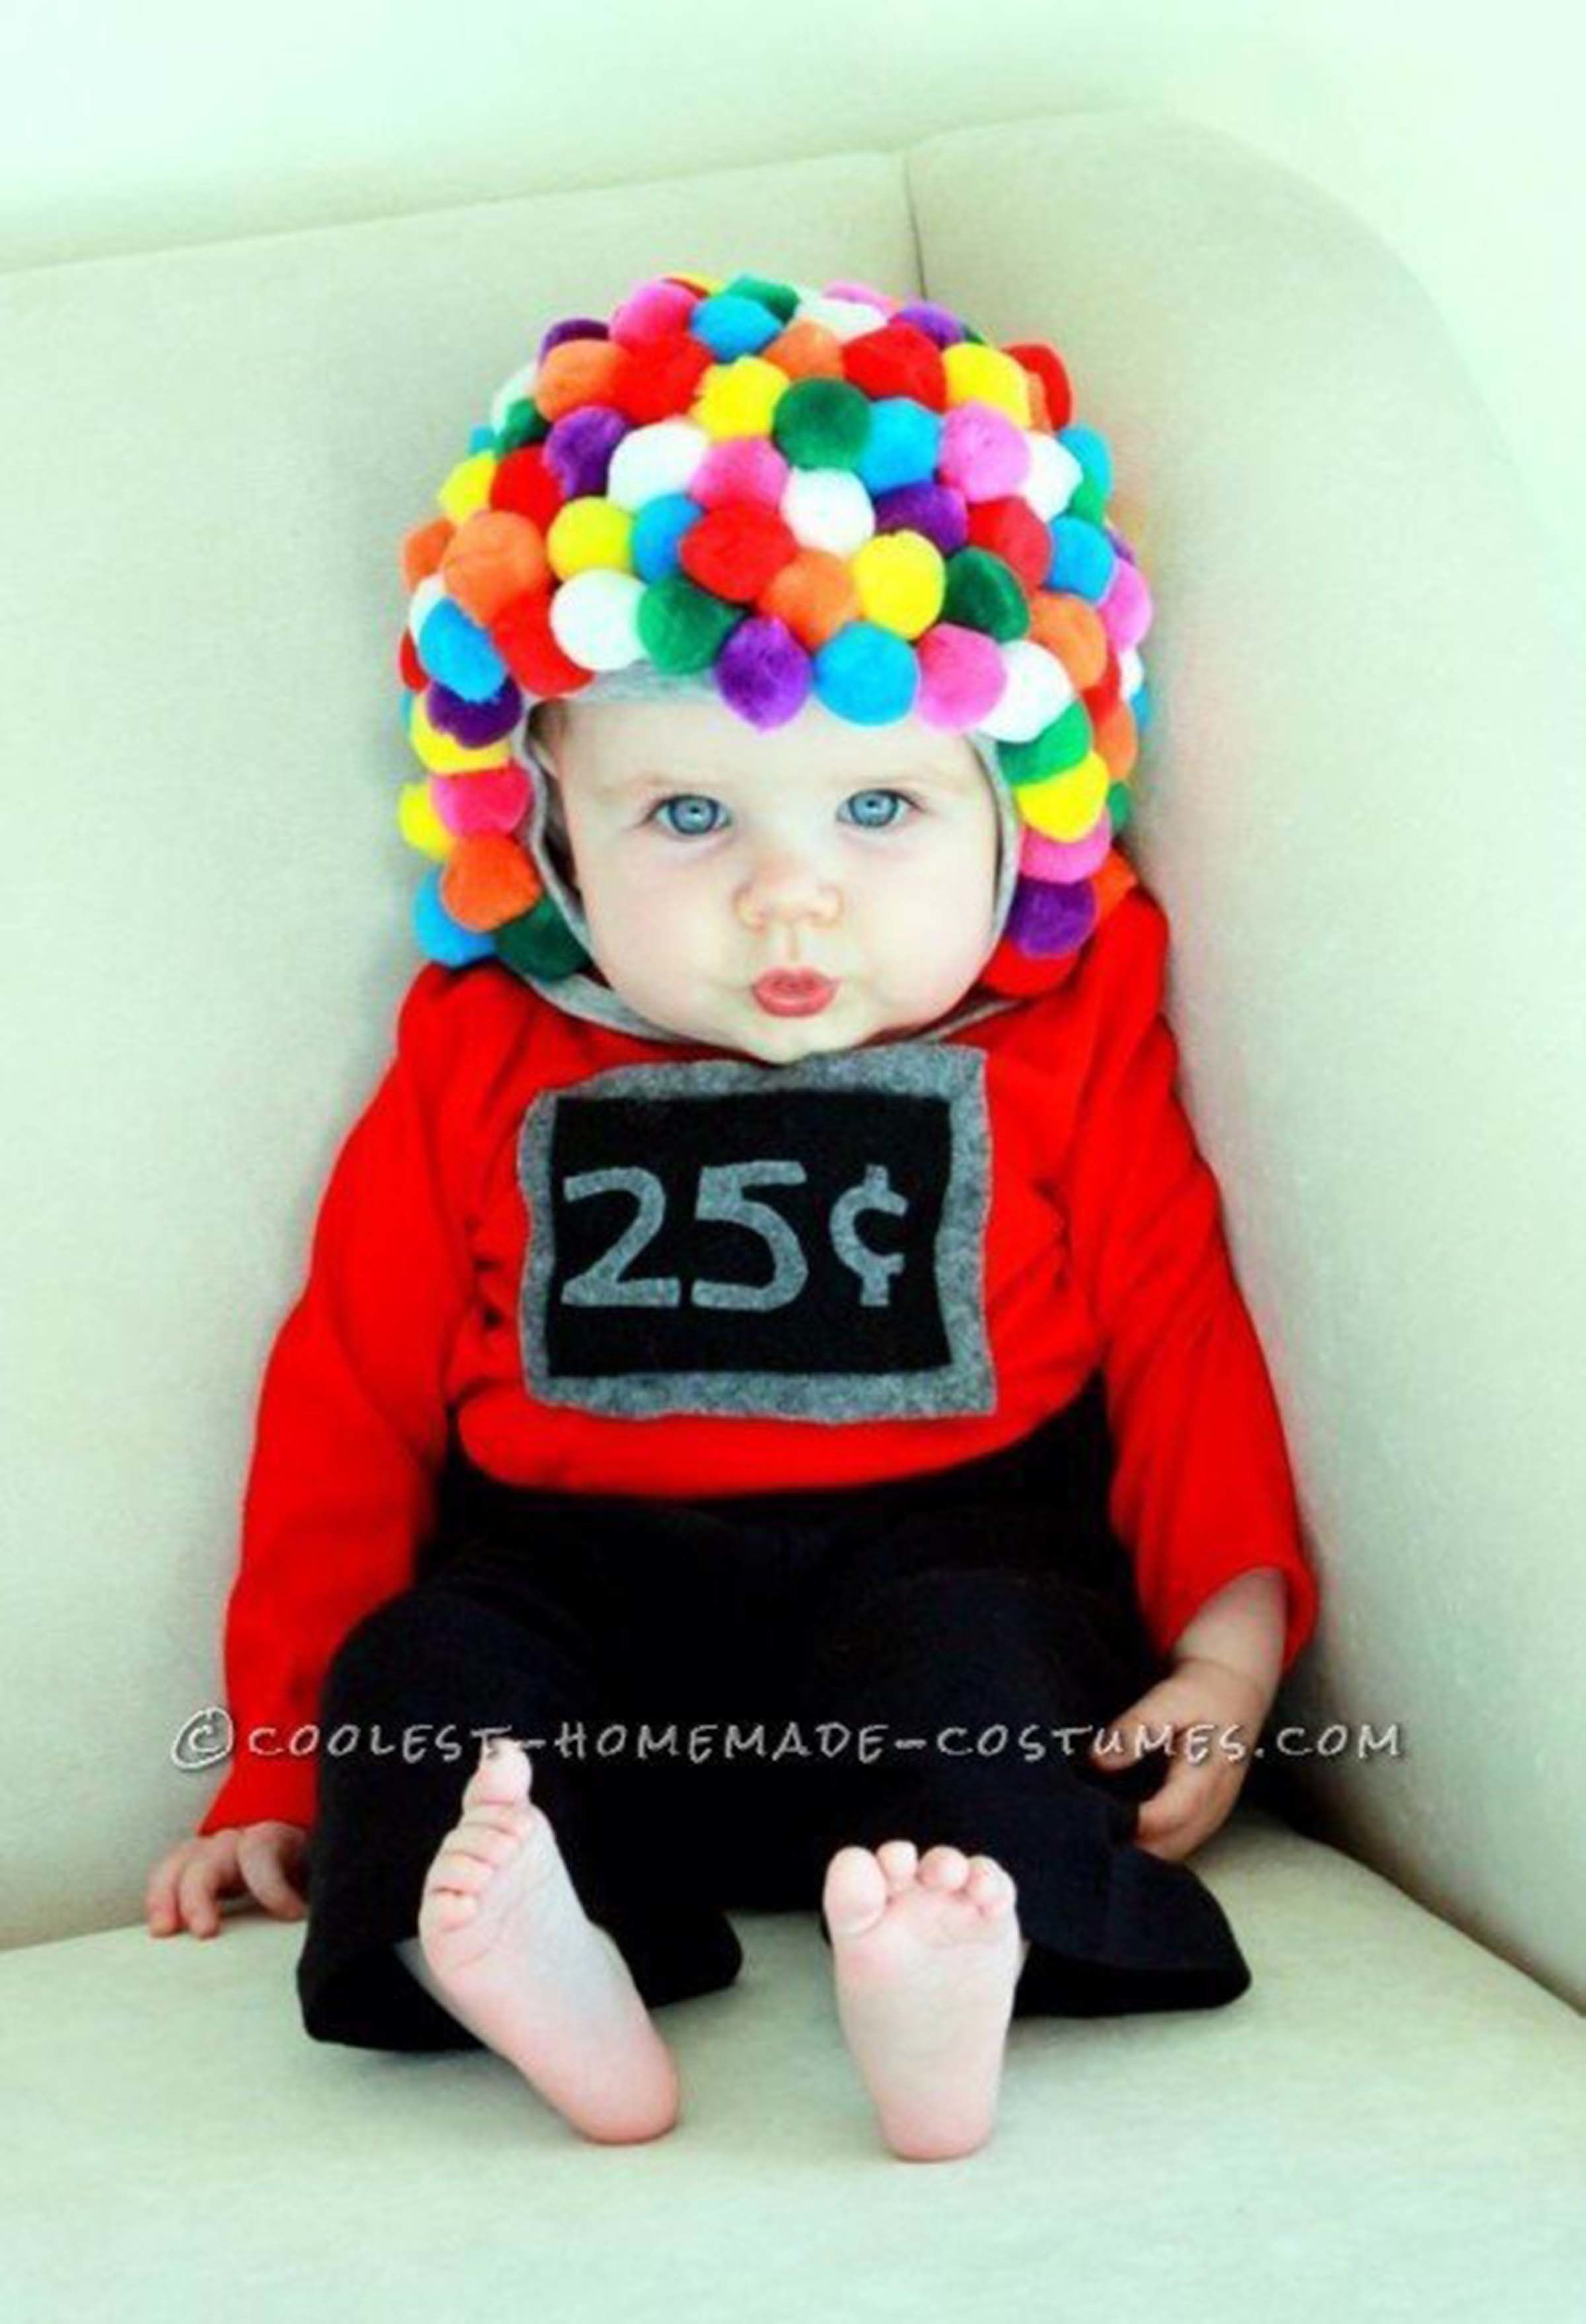 u003ca hrefu003d //ideas.coolest-homemade-costumes  sc 1 st  HuffPost & Baby Halloween Costumes Every Human Needs To See | HuffPost